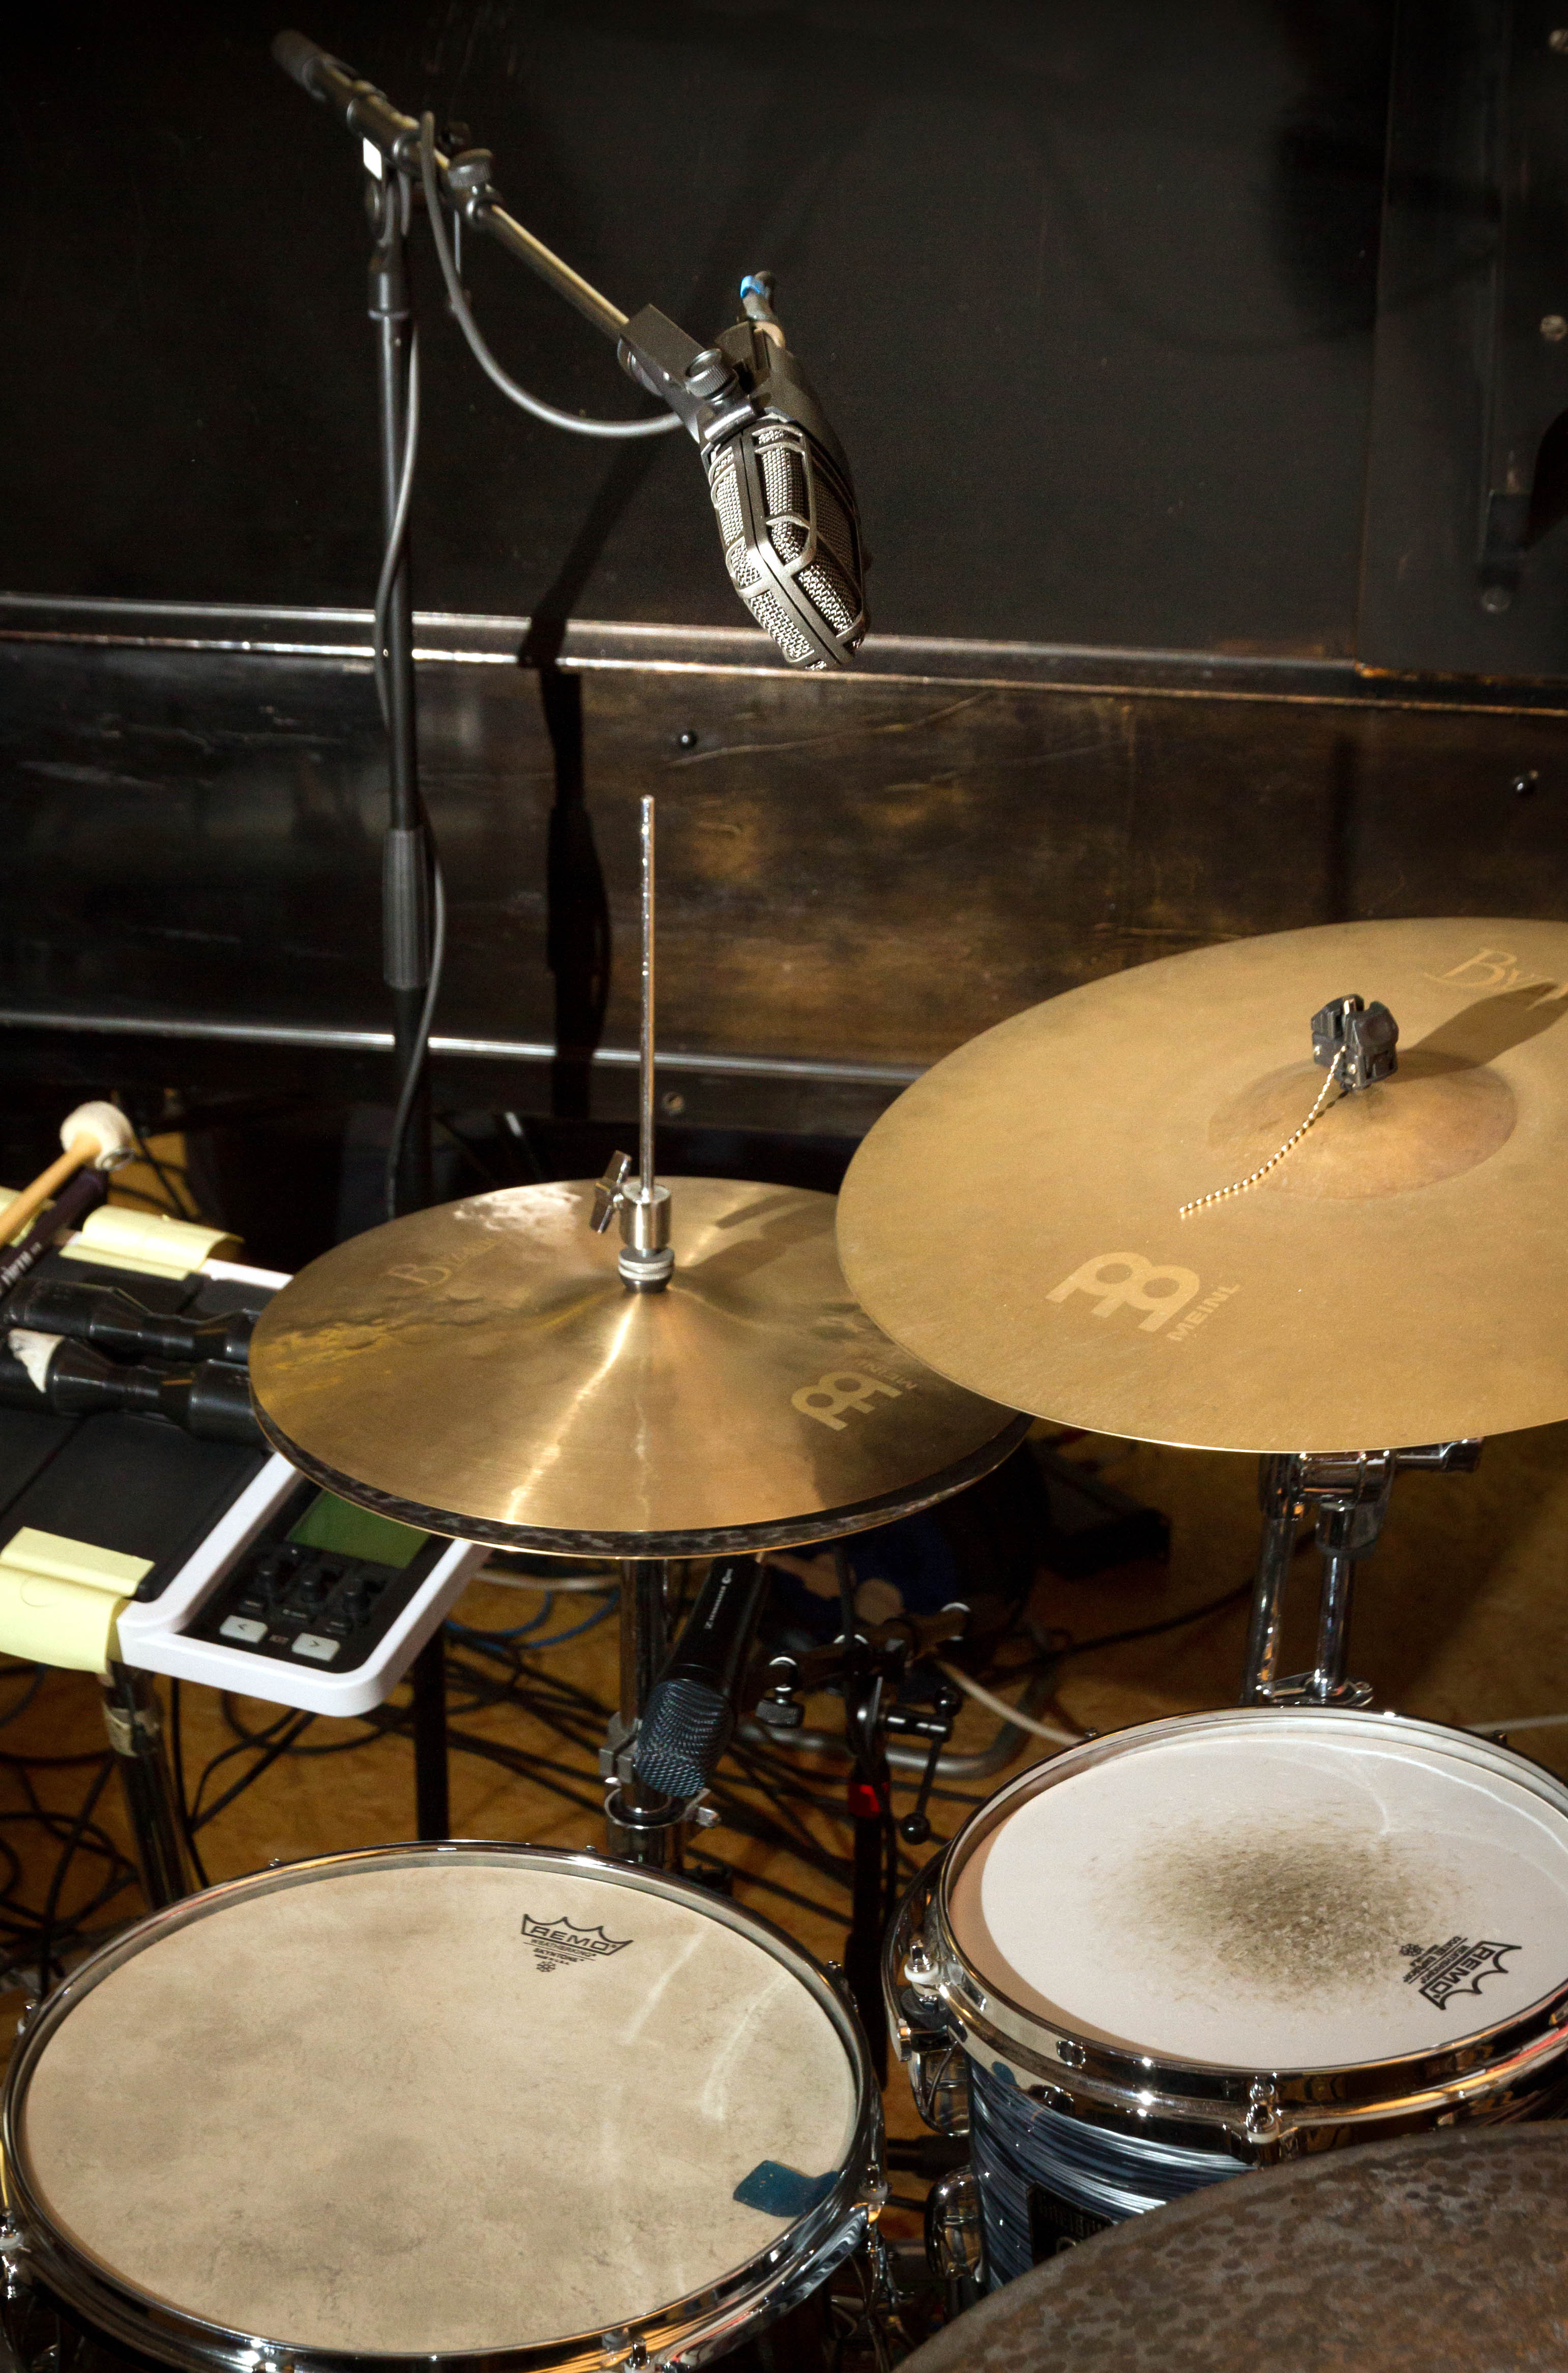 Microphone setup for snare drum